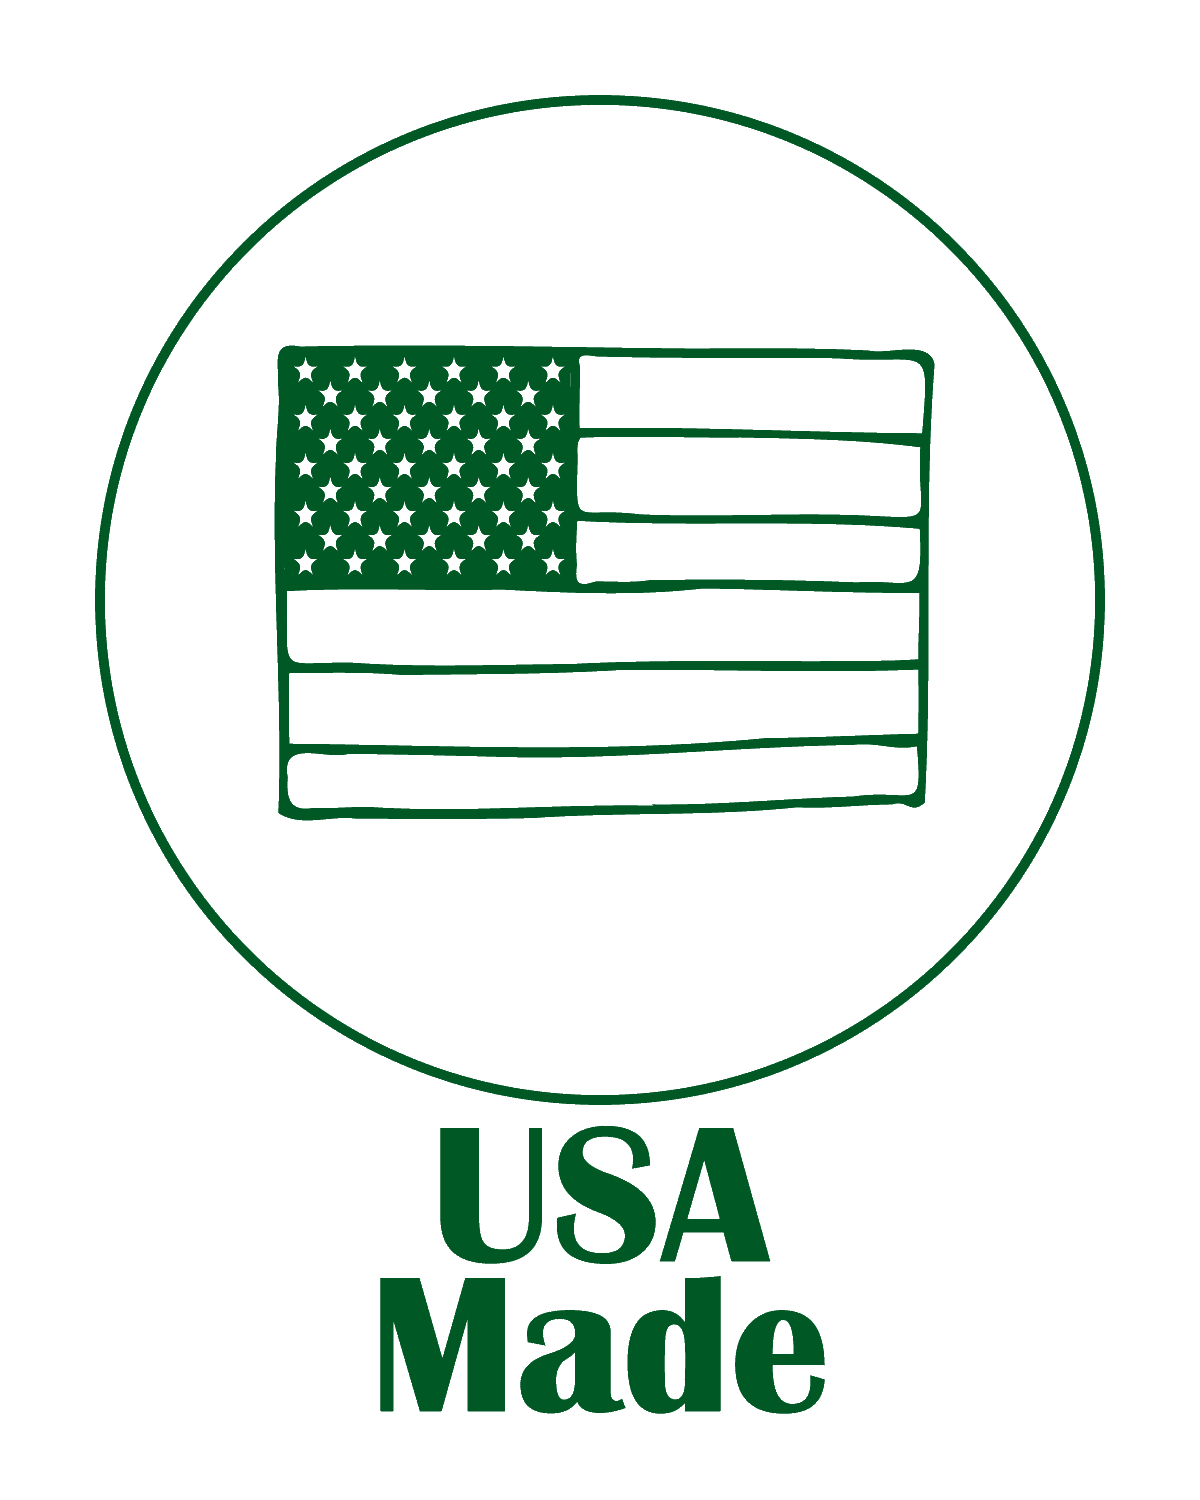 The Green Bundle USA Made Logo